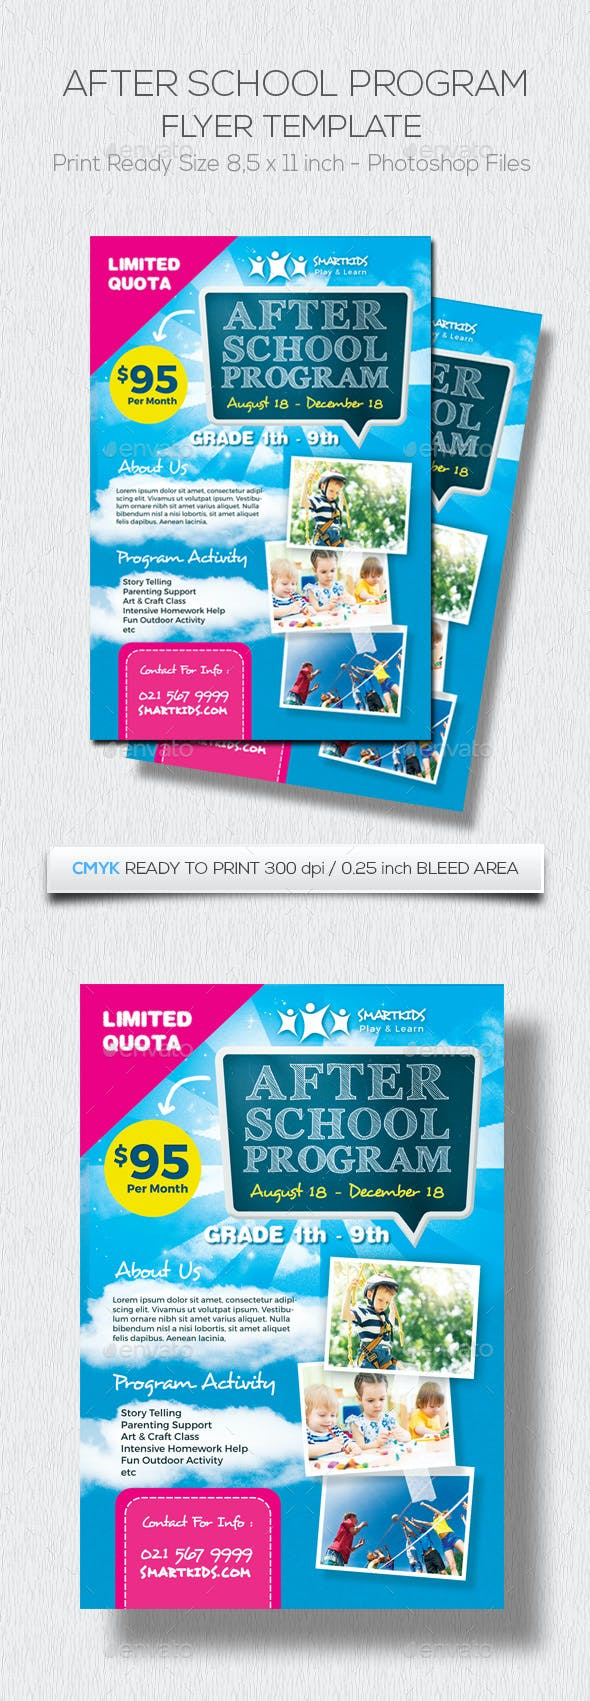 After School Program By Vindday Graphicriver